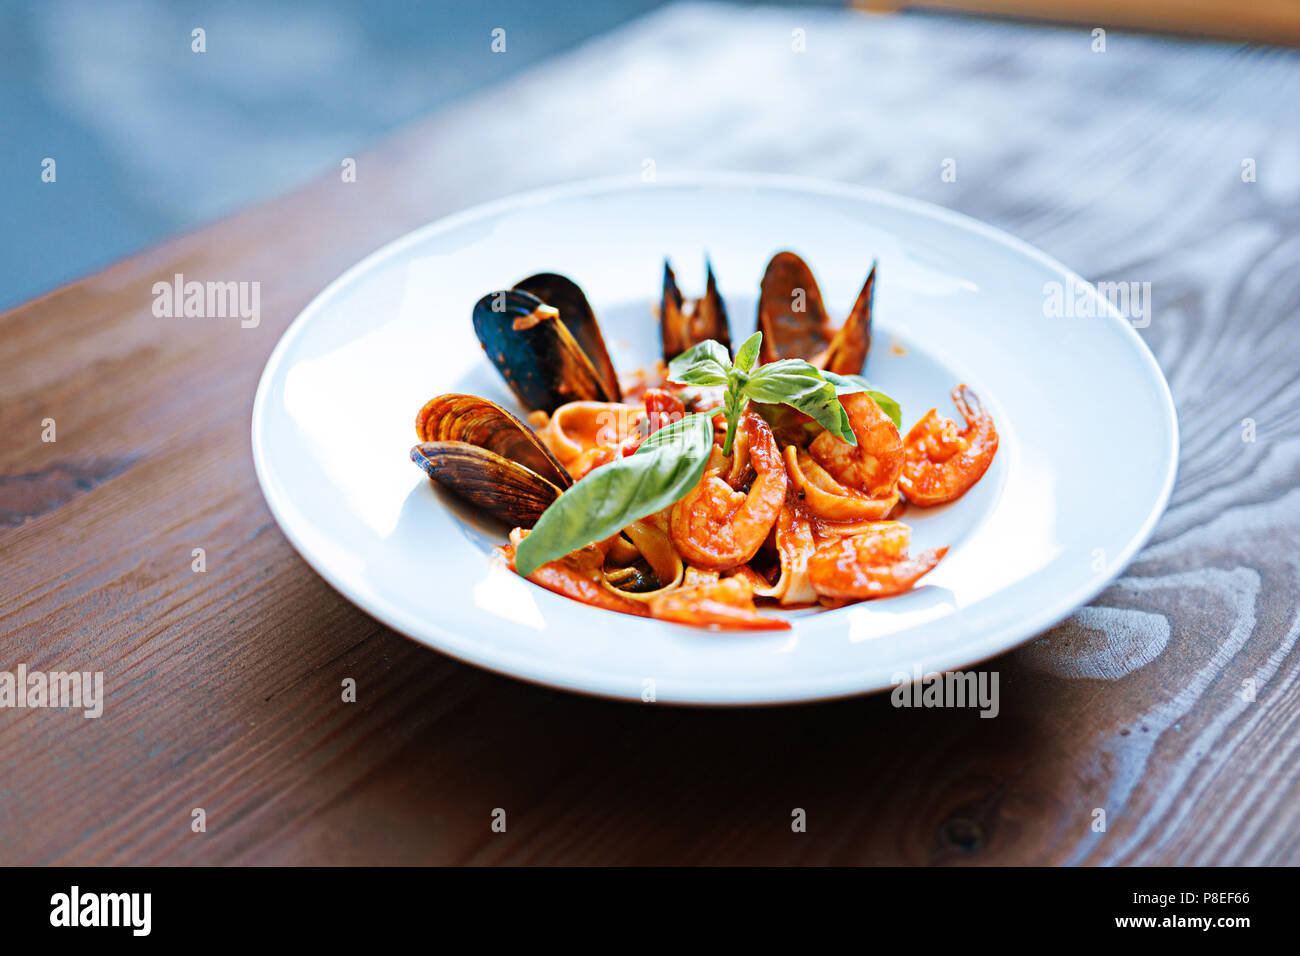 Close up of delicious pasta with some seafood in tomato sauce - Stock Image